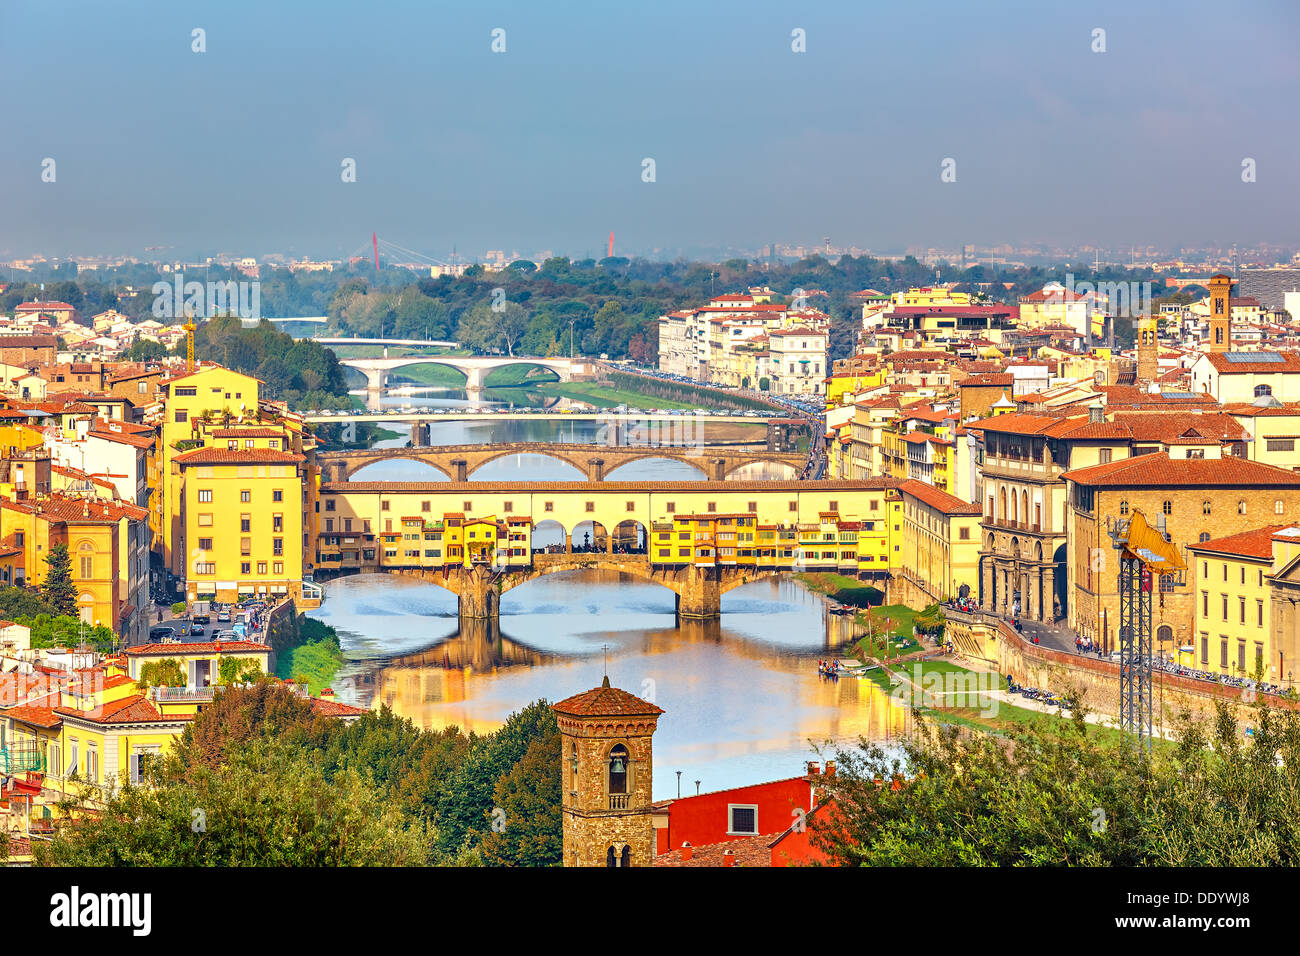 Bridges over Arno river in Florence - Stock Image